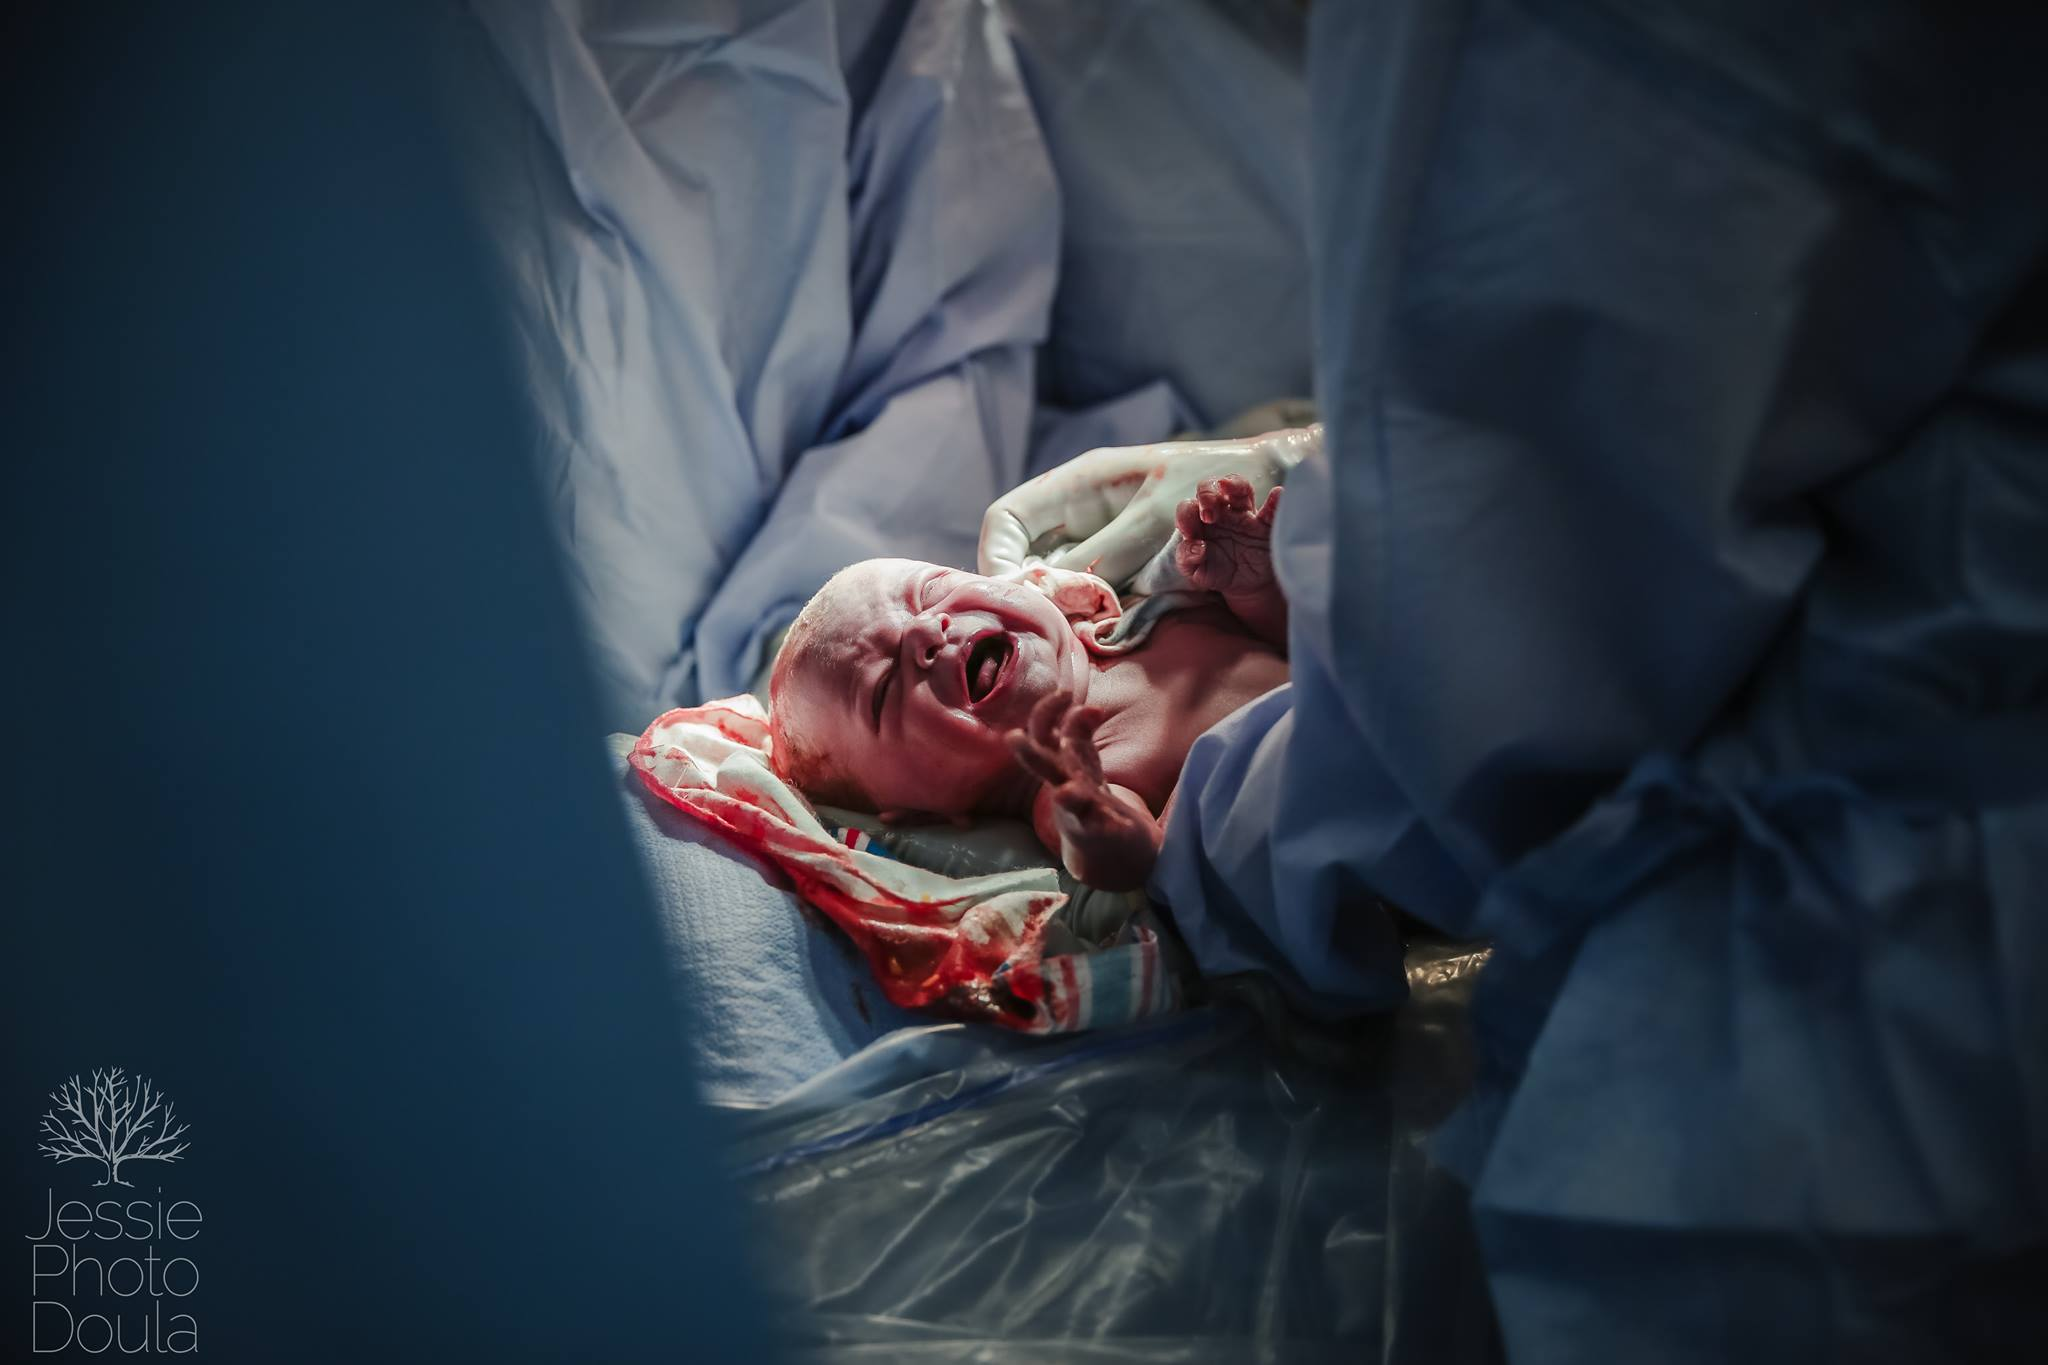 Even in emergency, family centered Cesareans are still obtainable   www.jessiephotodoula.com